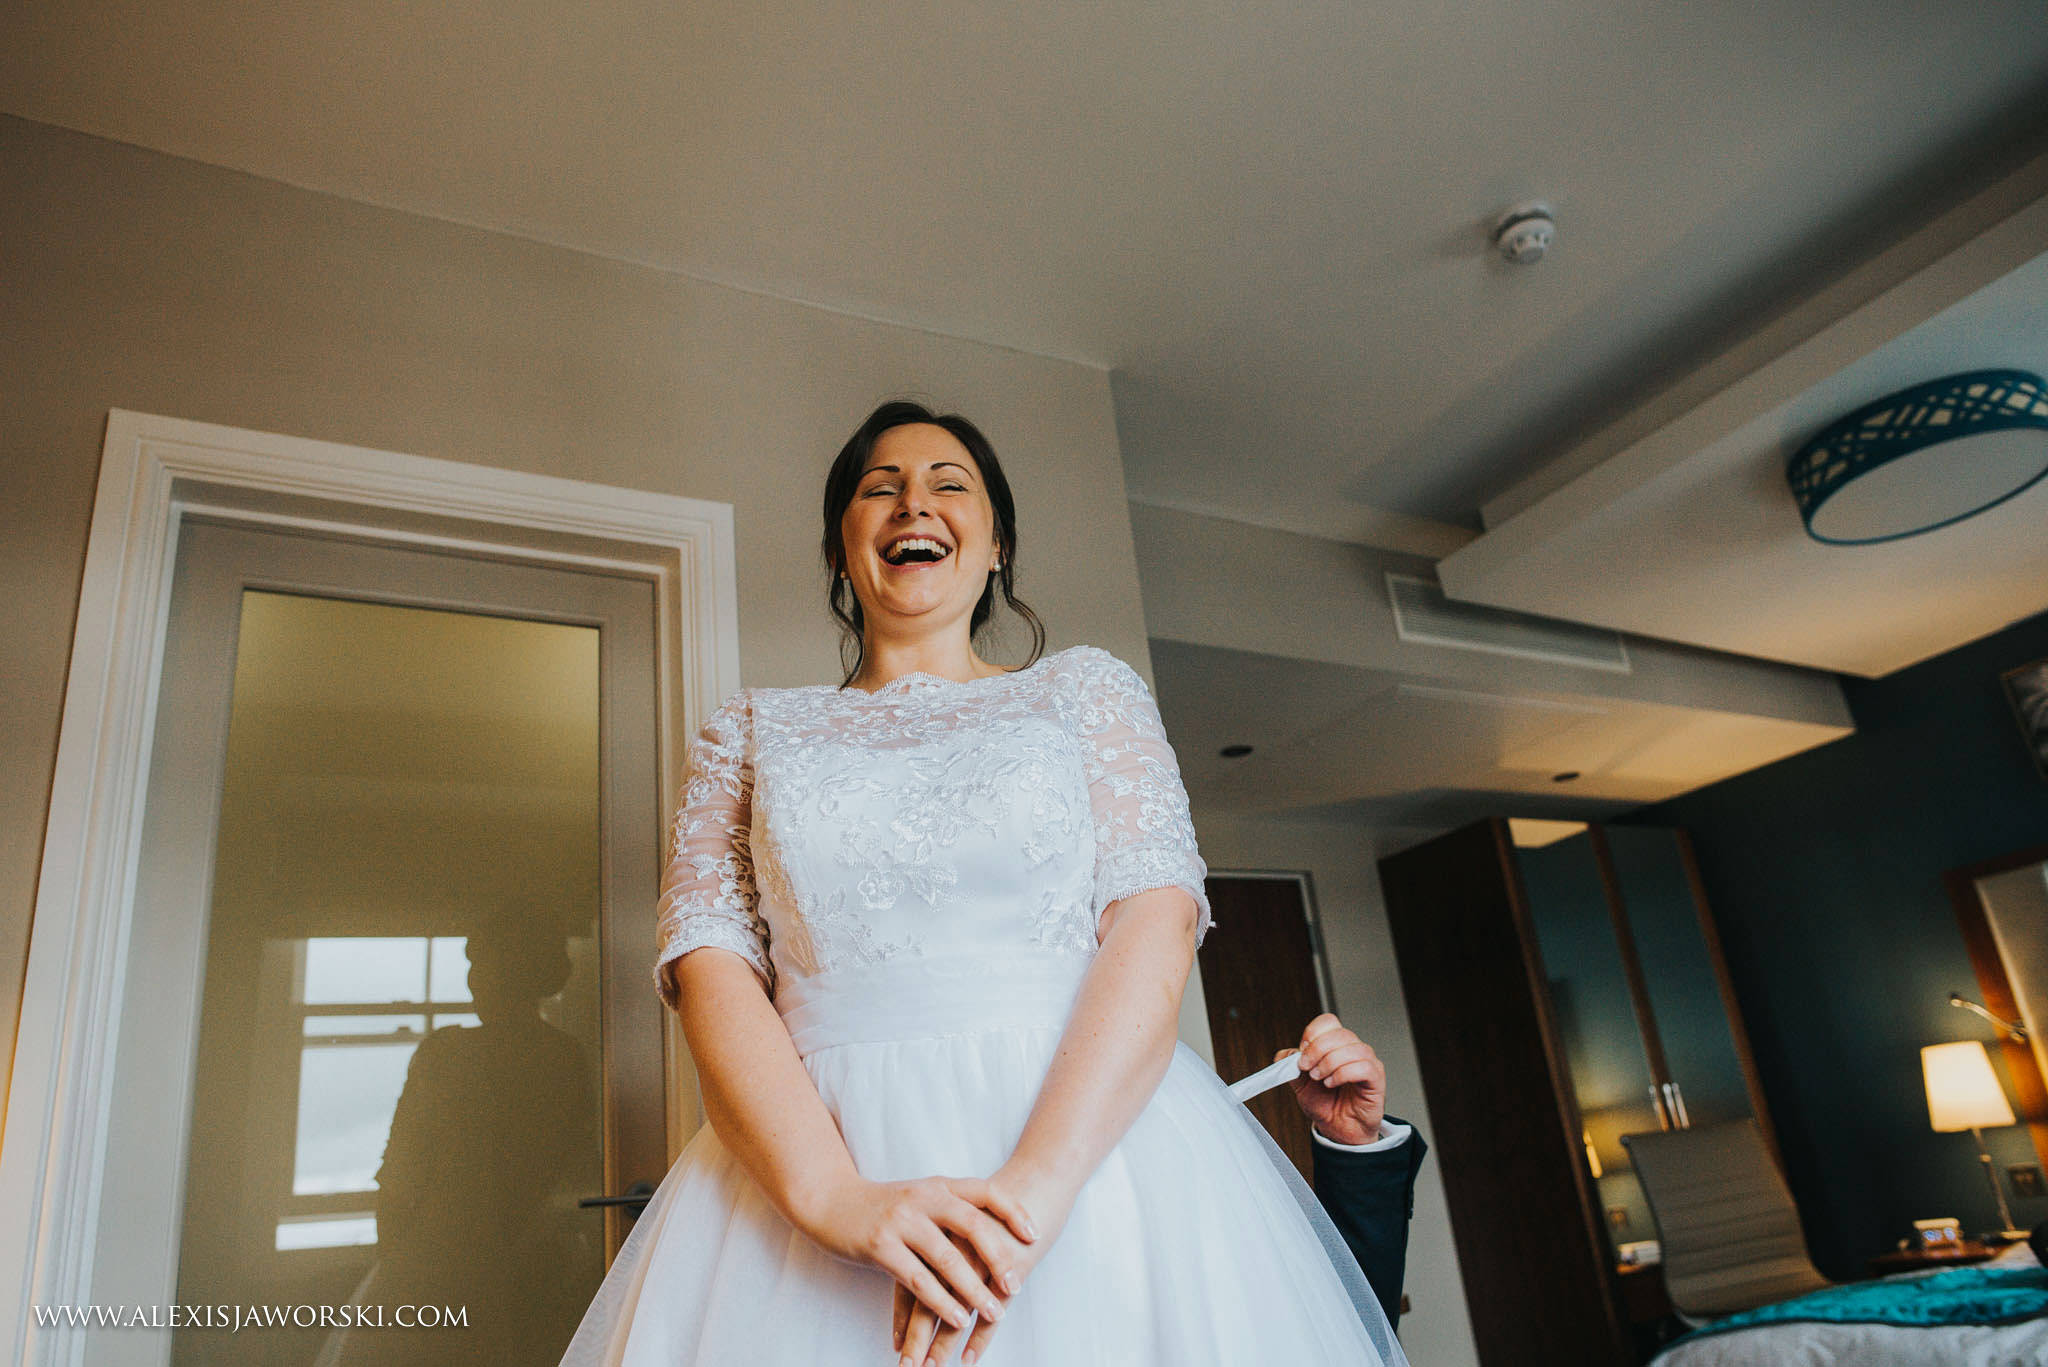 bride having a good laugh!